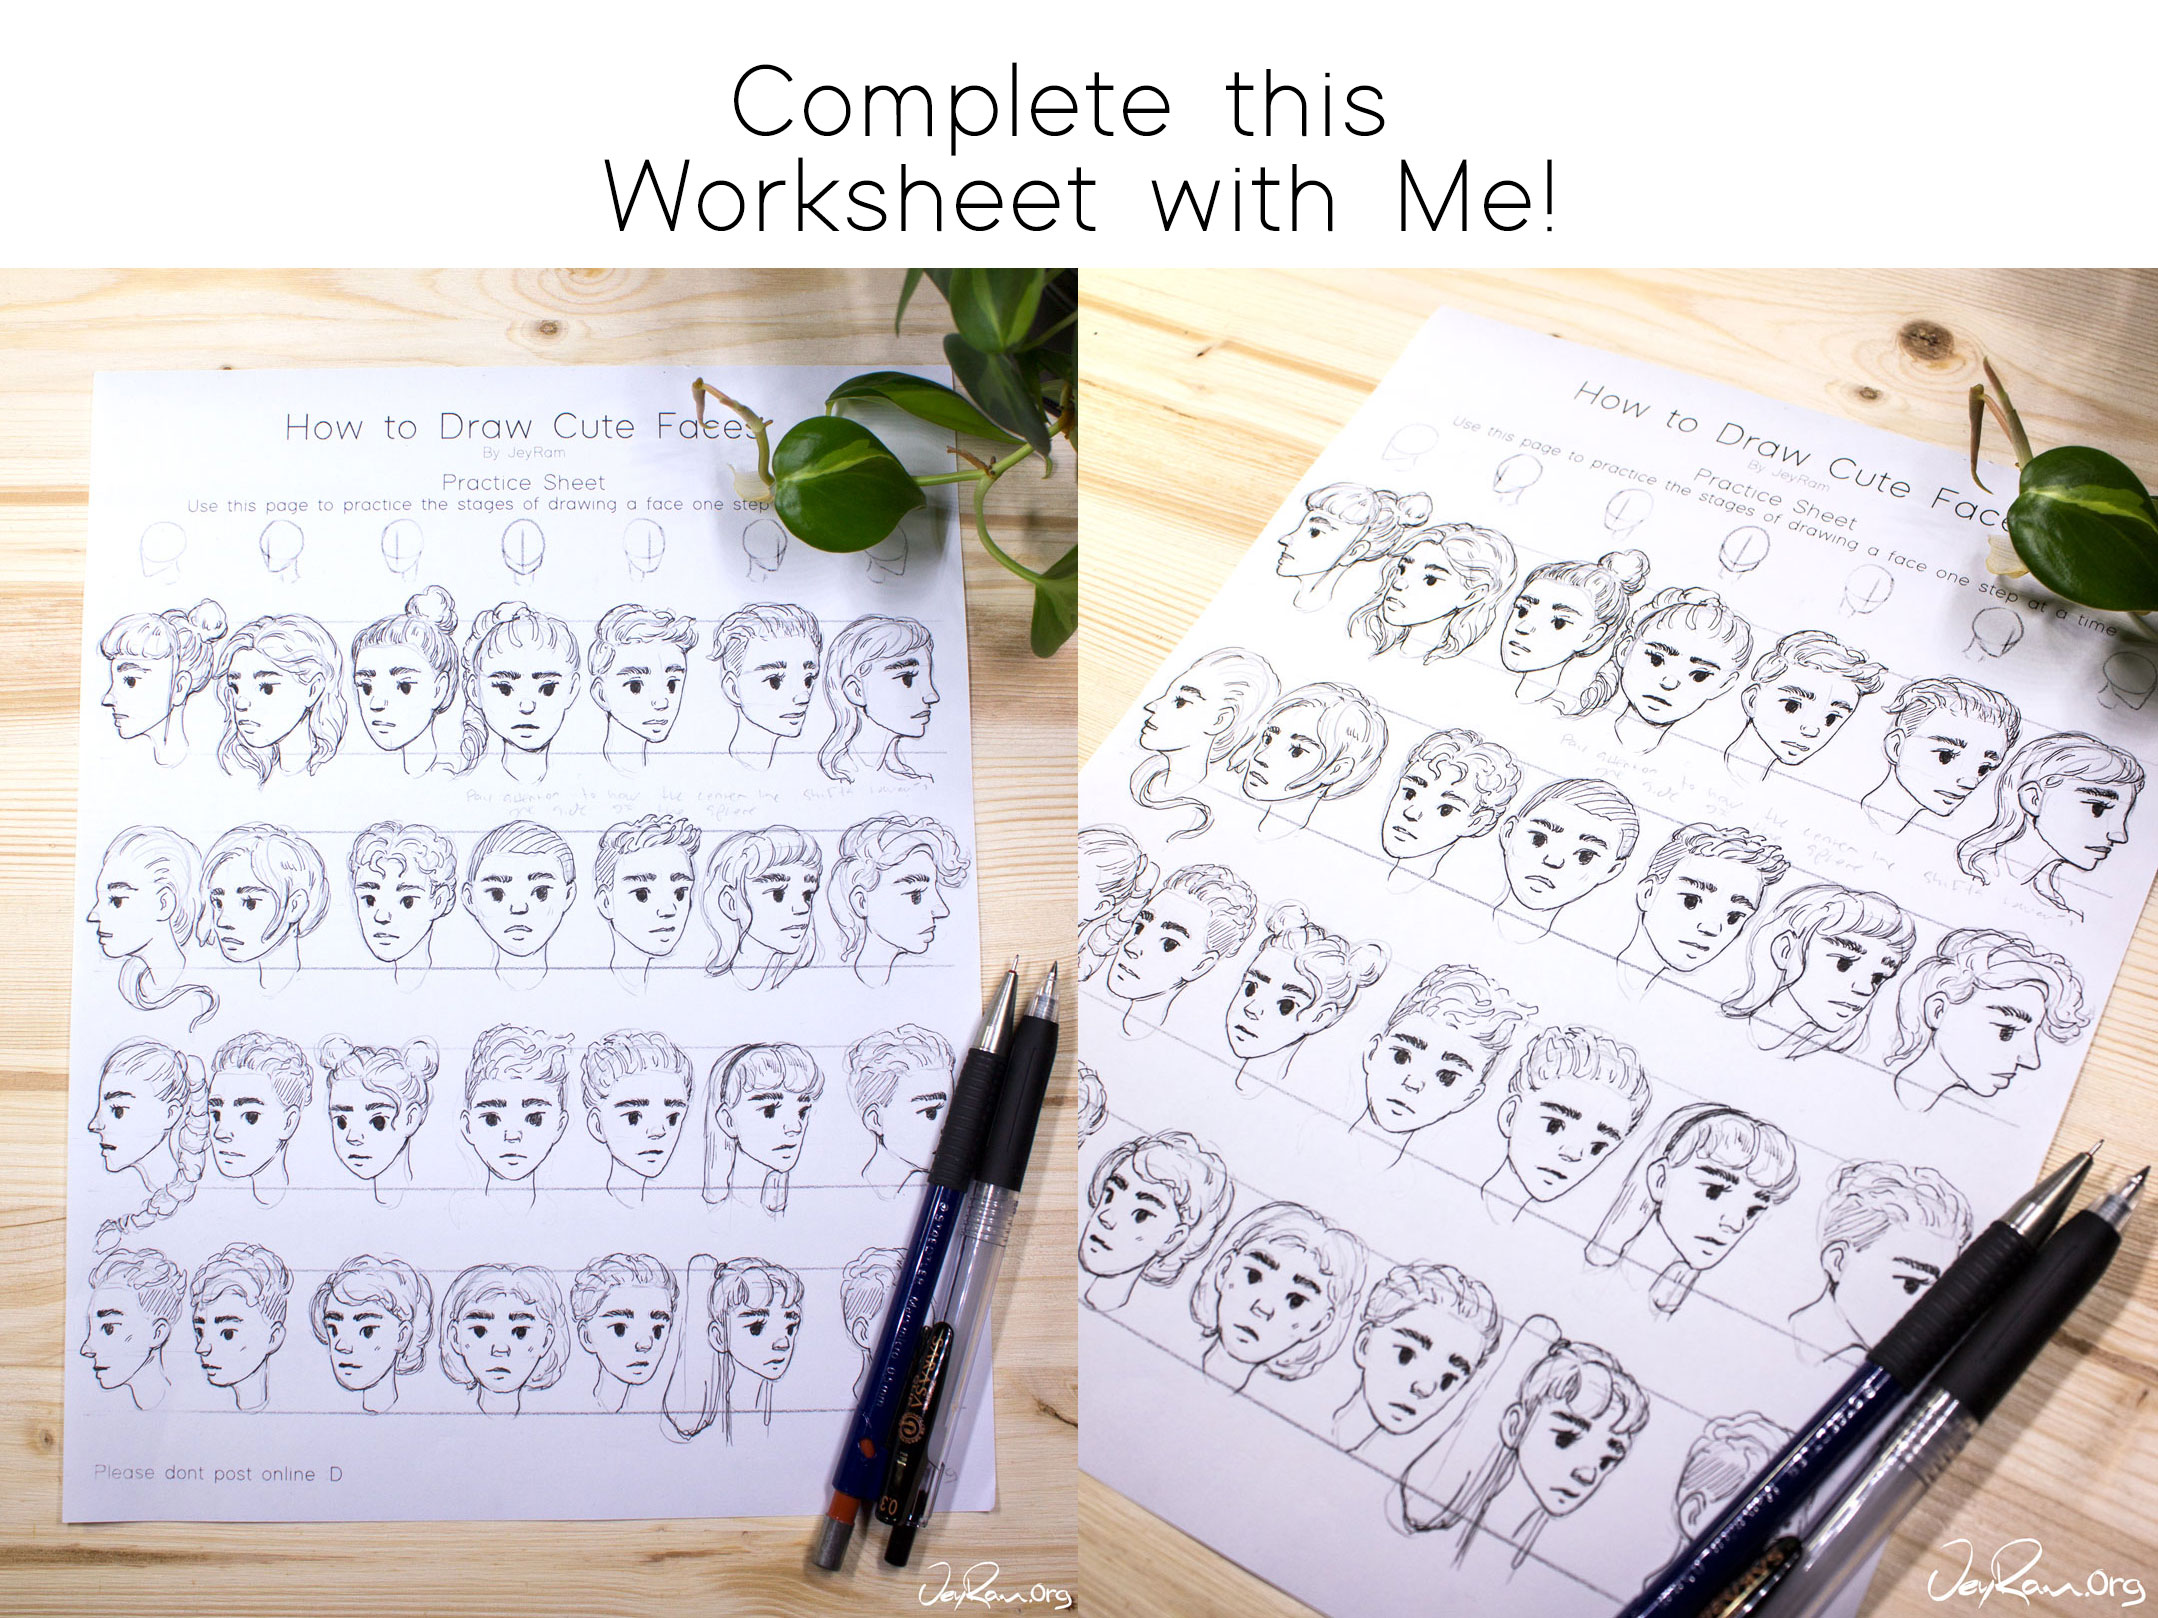 Learn how to draw cute faces with this simple step by step video tutorial that includes worksheets! This approach is perfect for beginners